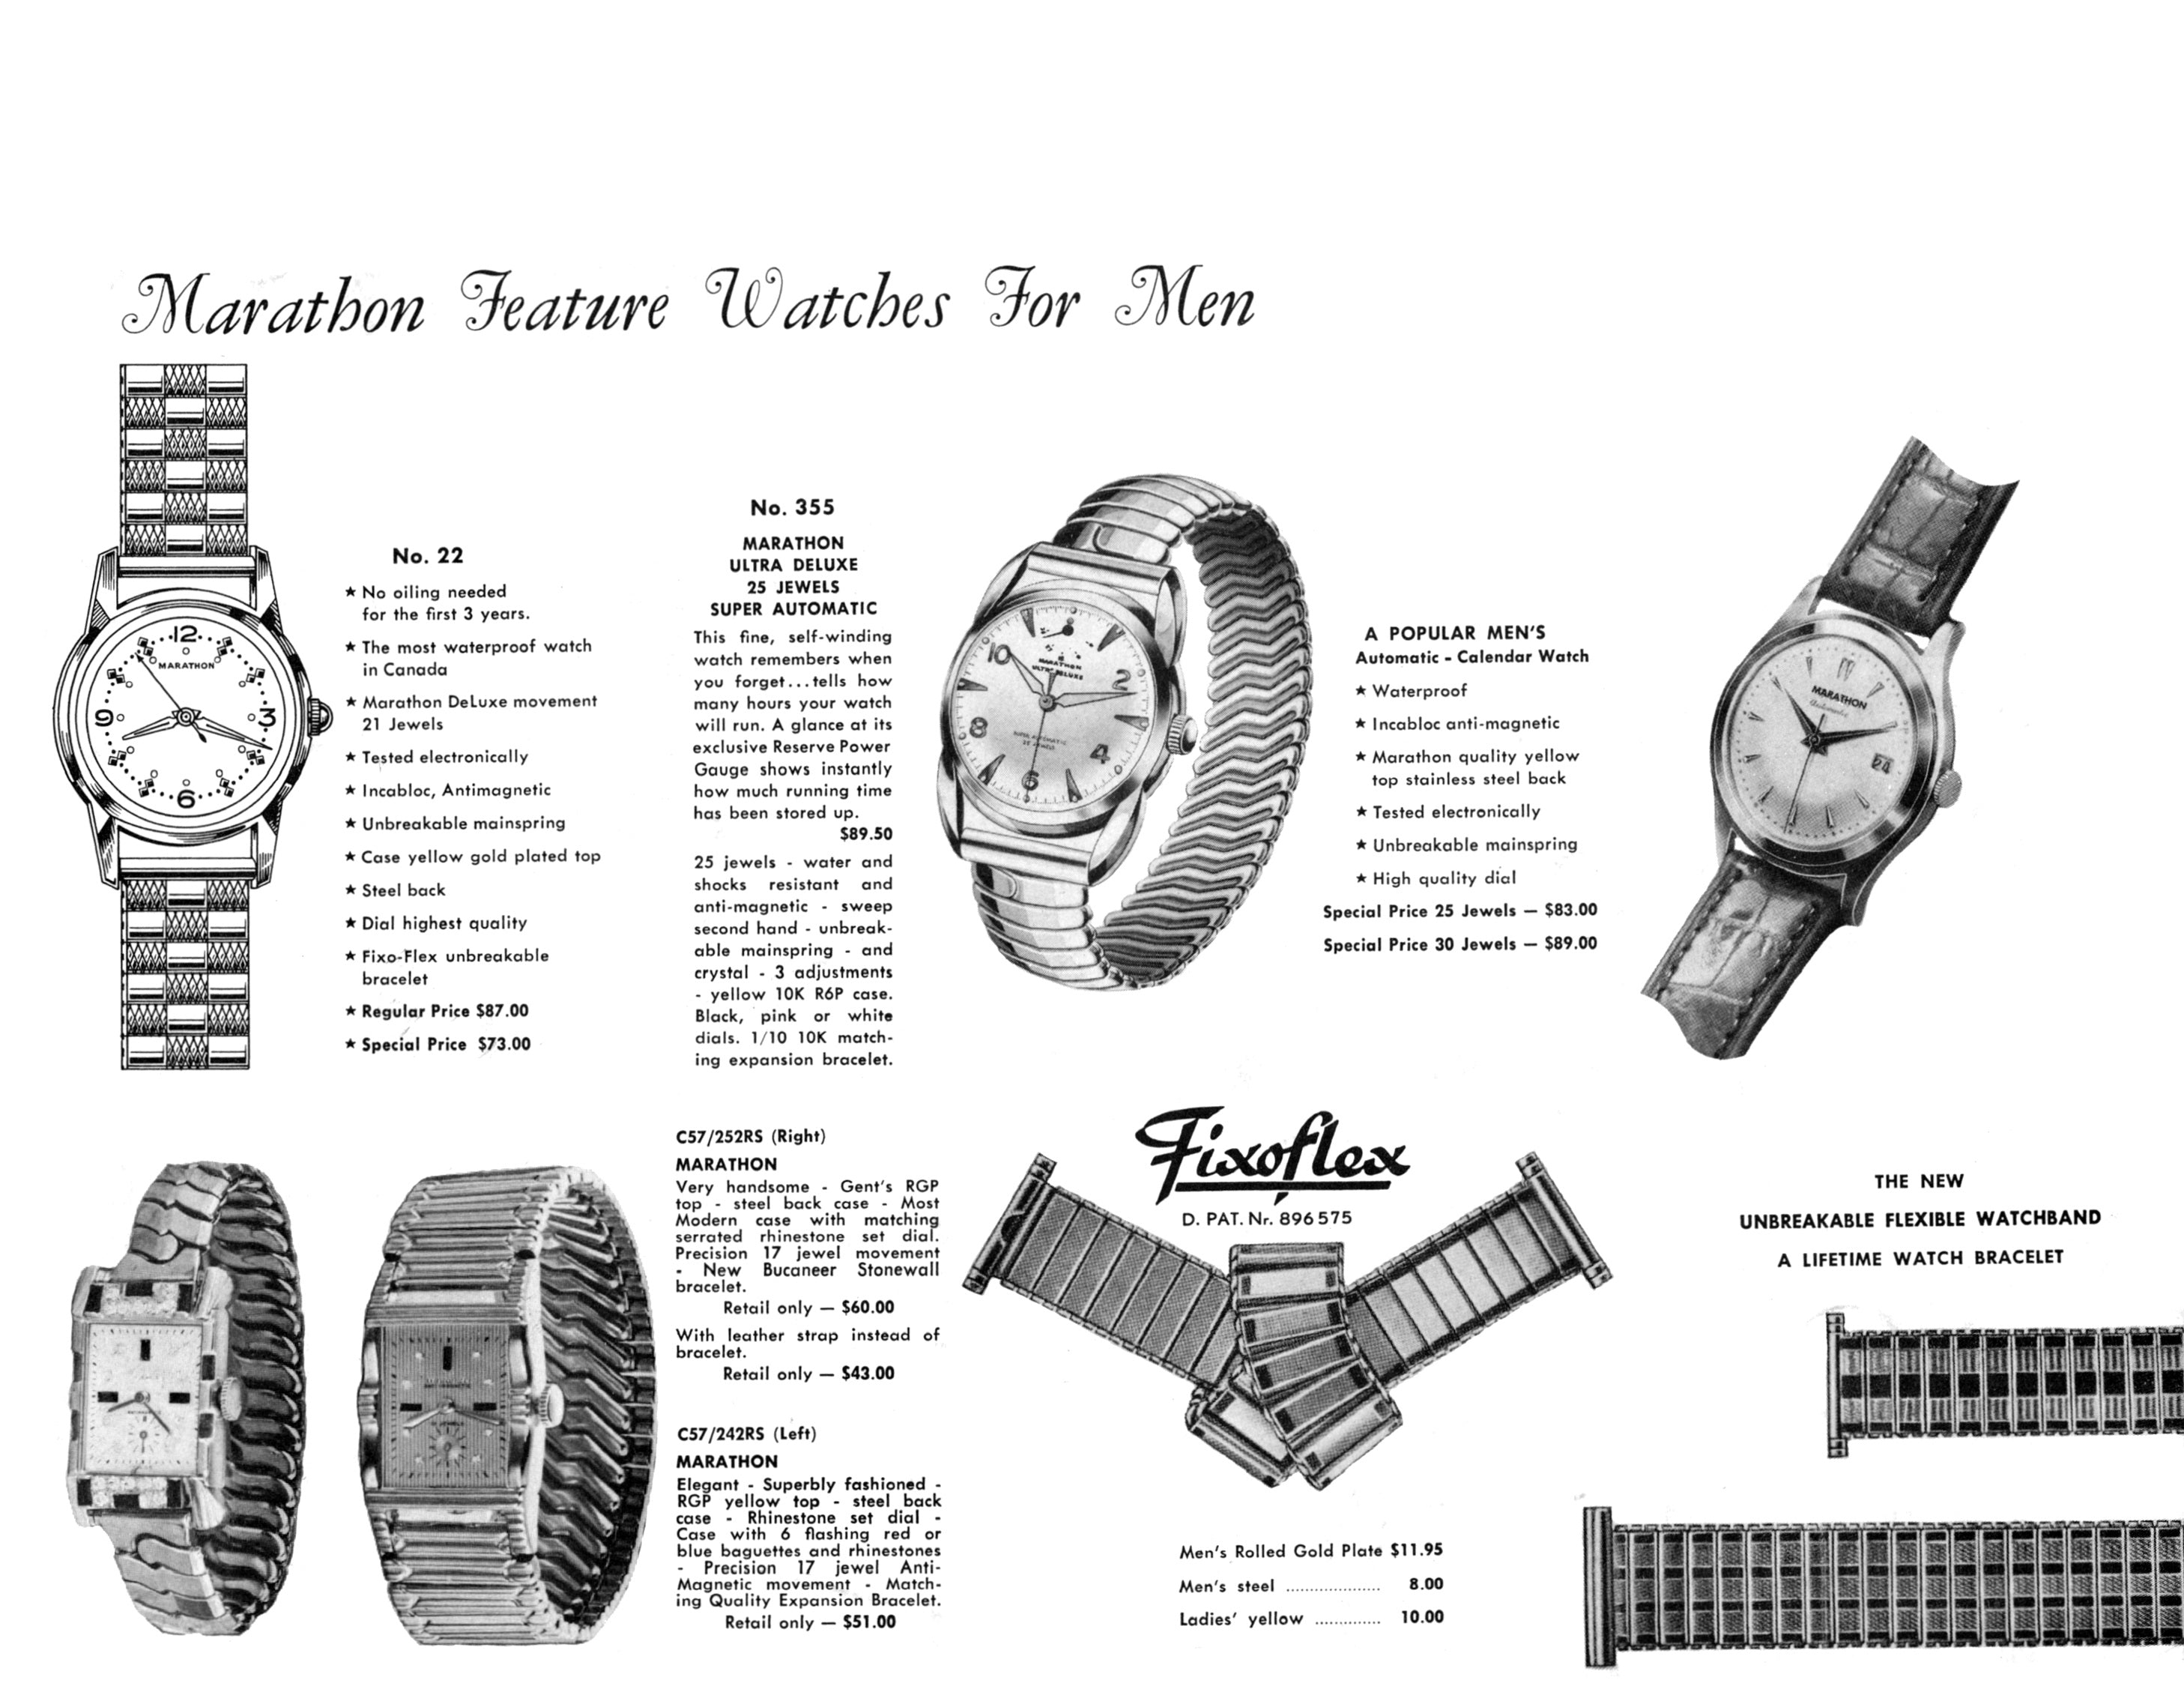 black and white ad: 'Marathon Feature Watches for Men' above images of five watches and three watch bands